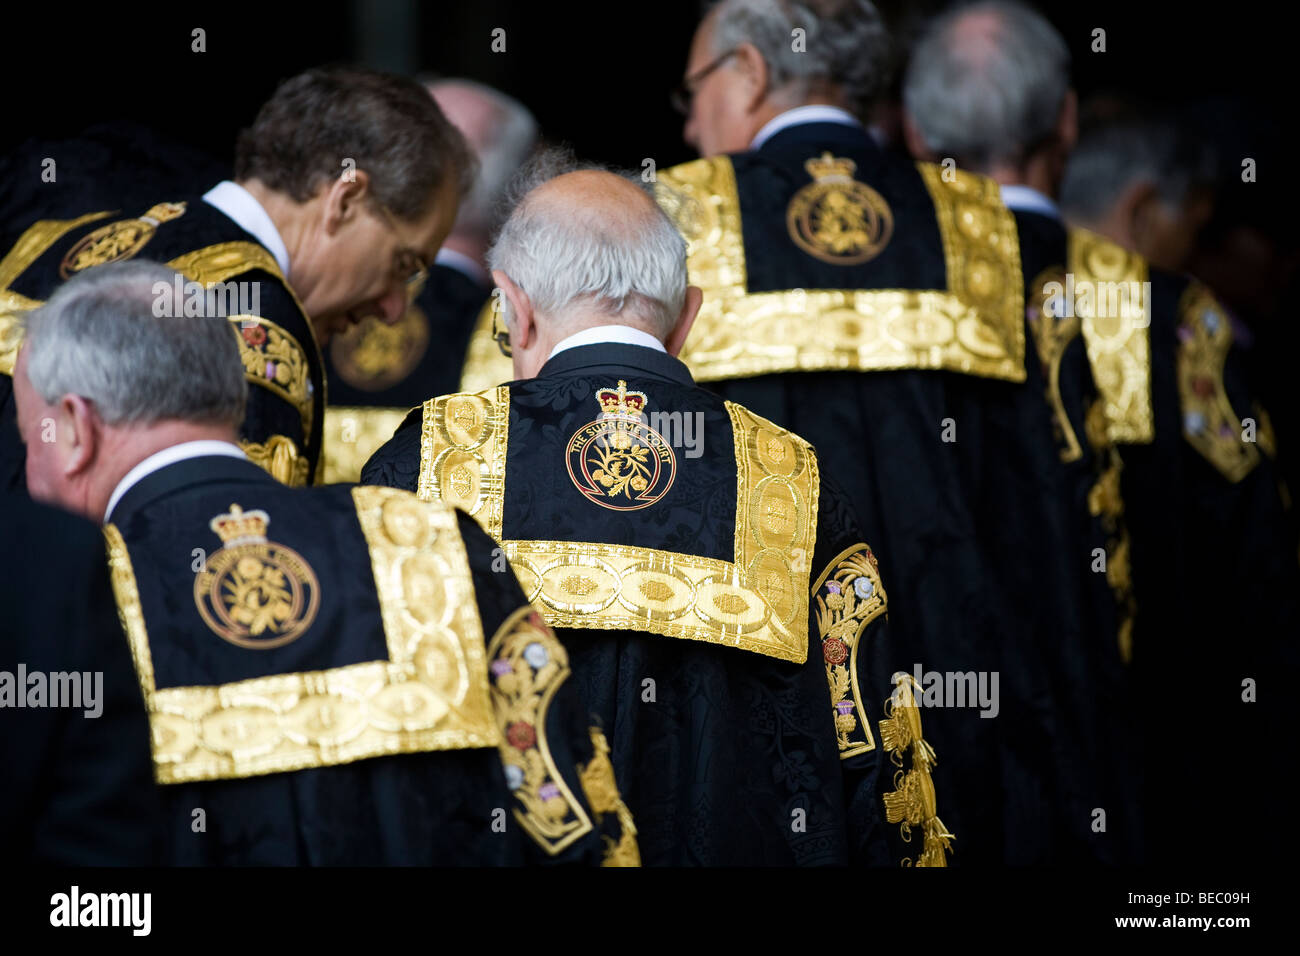 Supreme Court Judges procession into Westminster Abbey - Stock Image